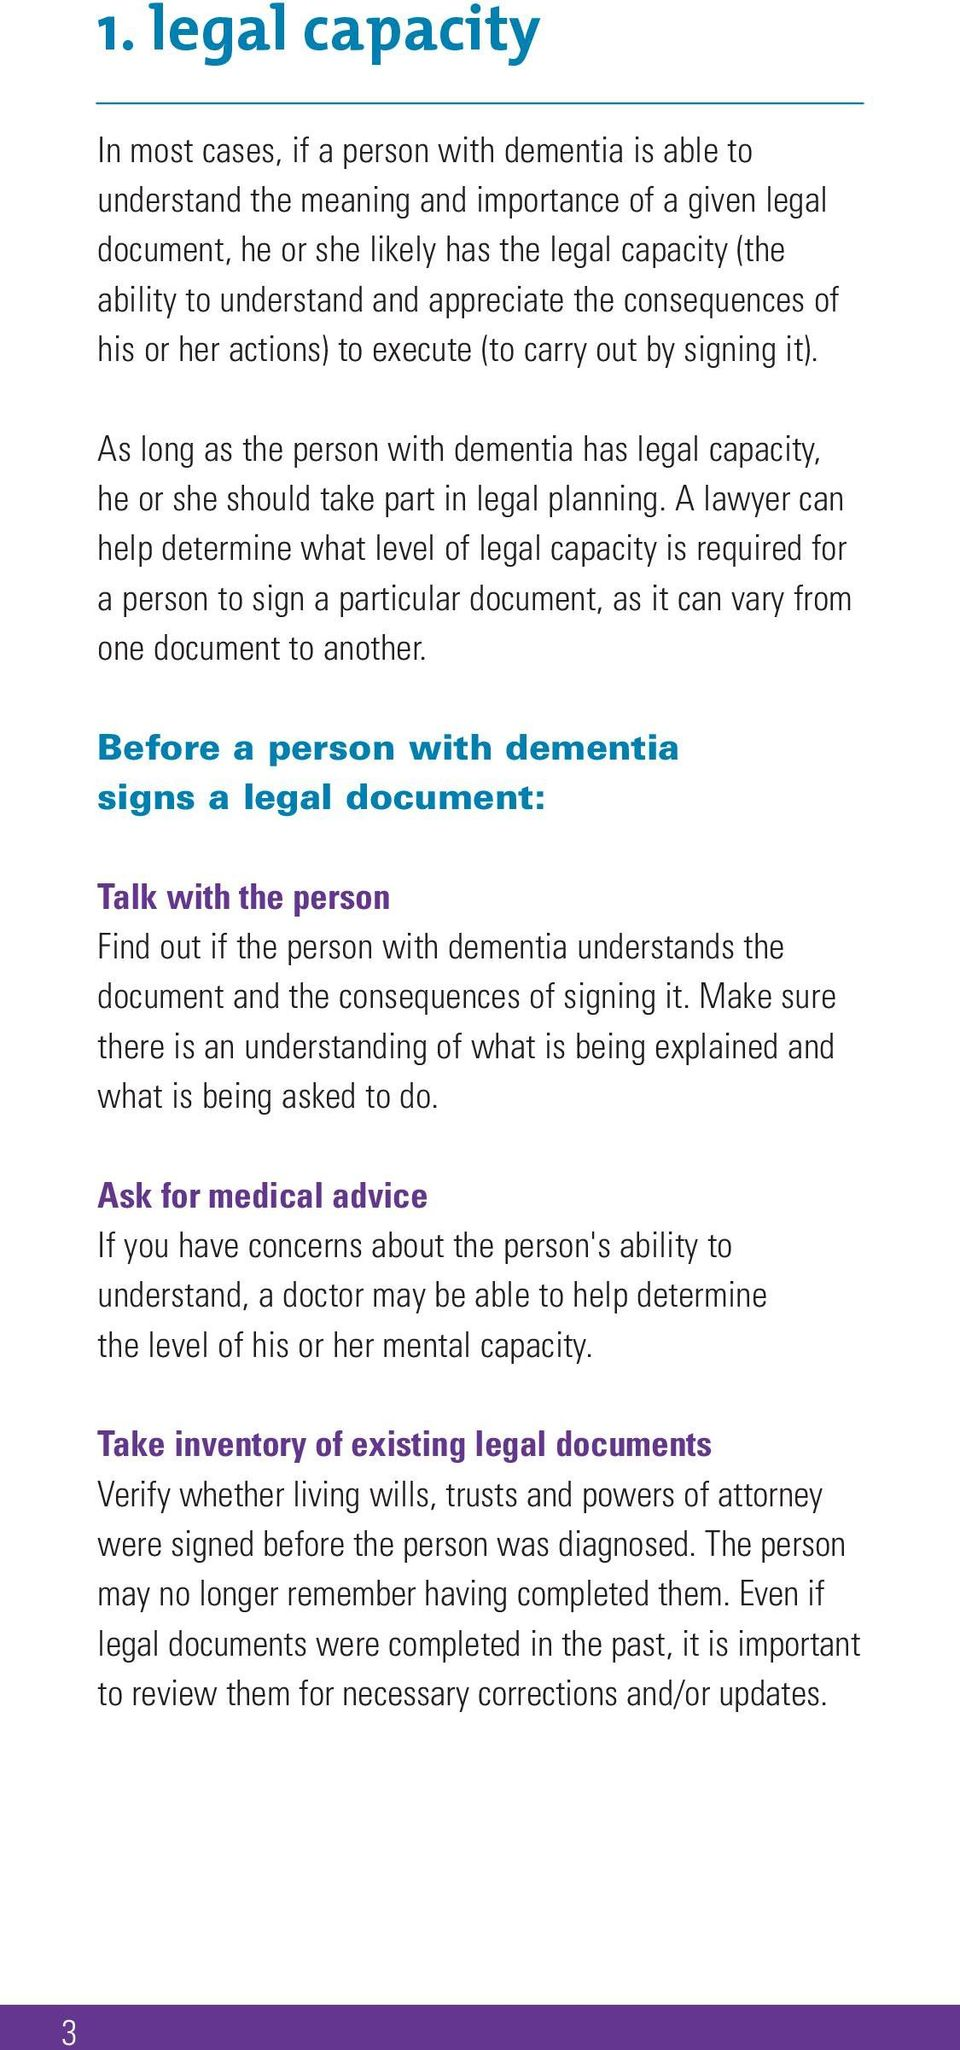 As long as the person with dementia has legal capacity, he or she should take part in legal planning.